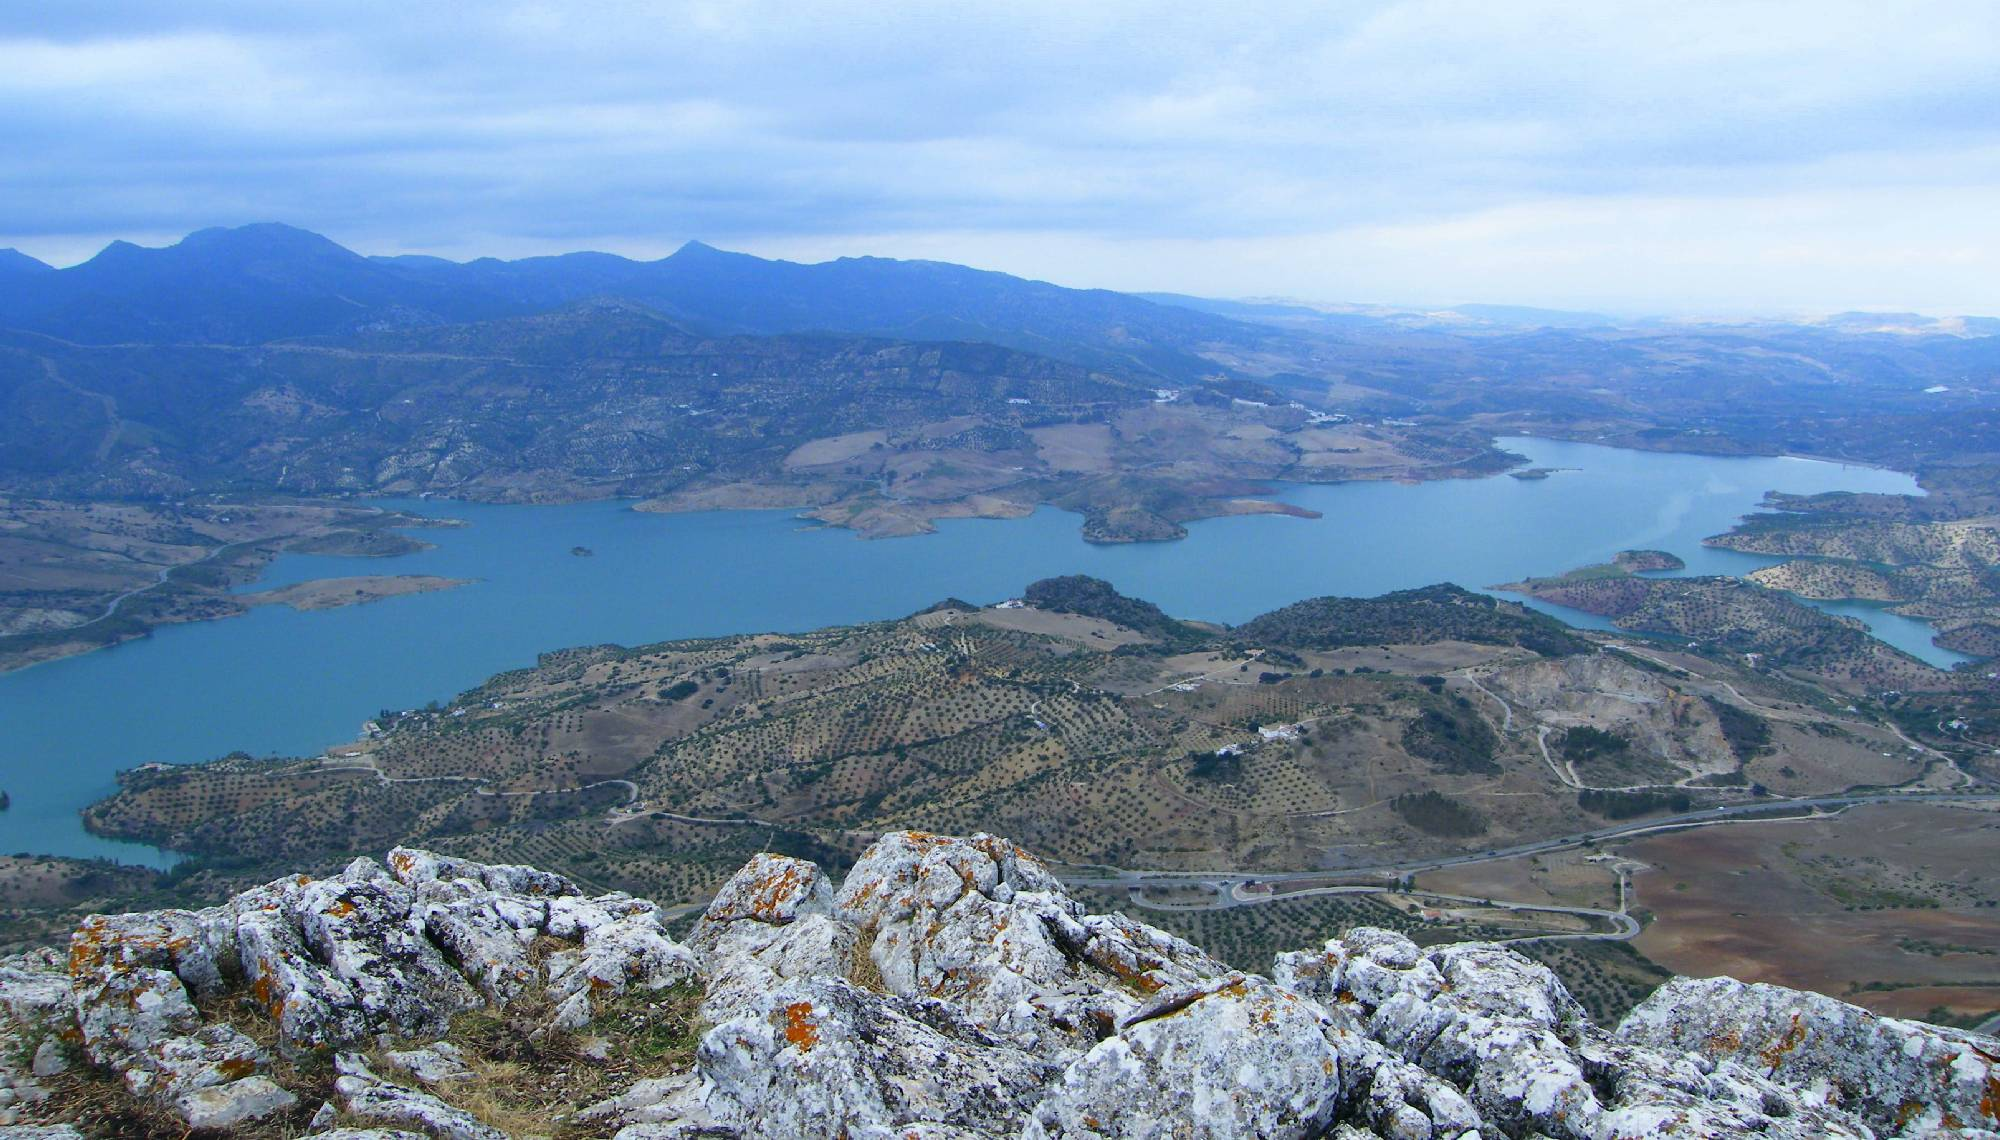 Hiking through the Sierra de Grazalema